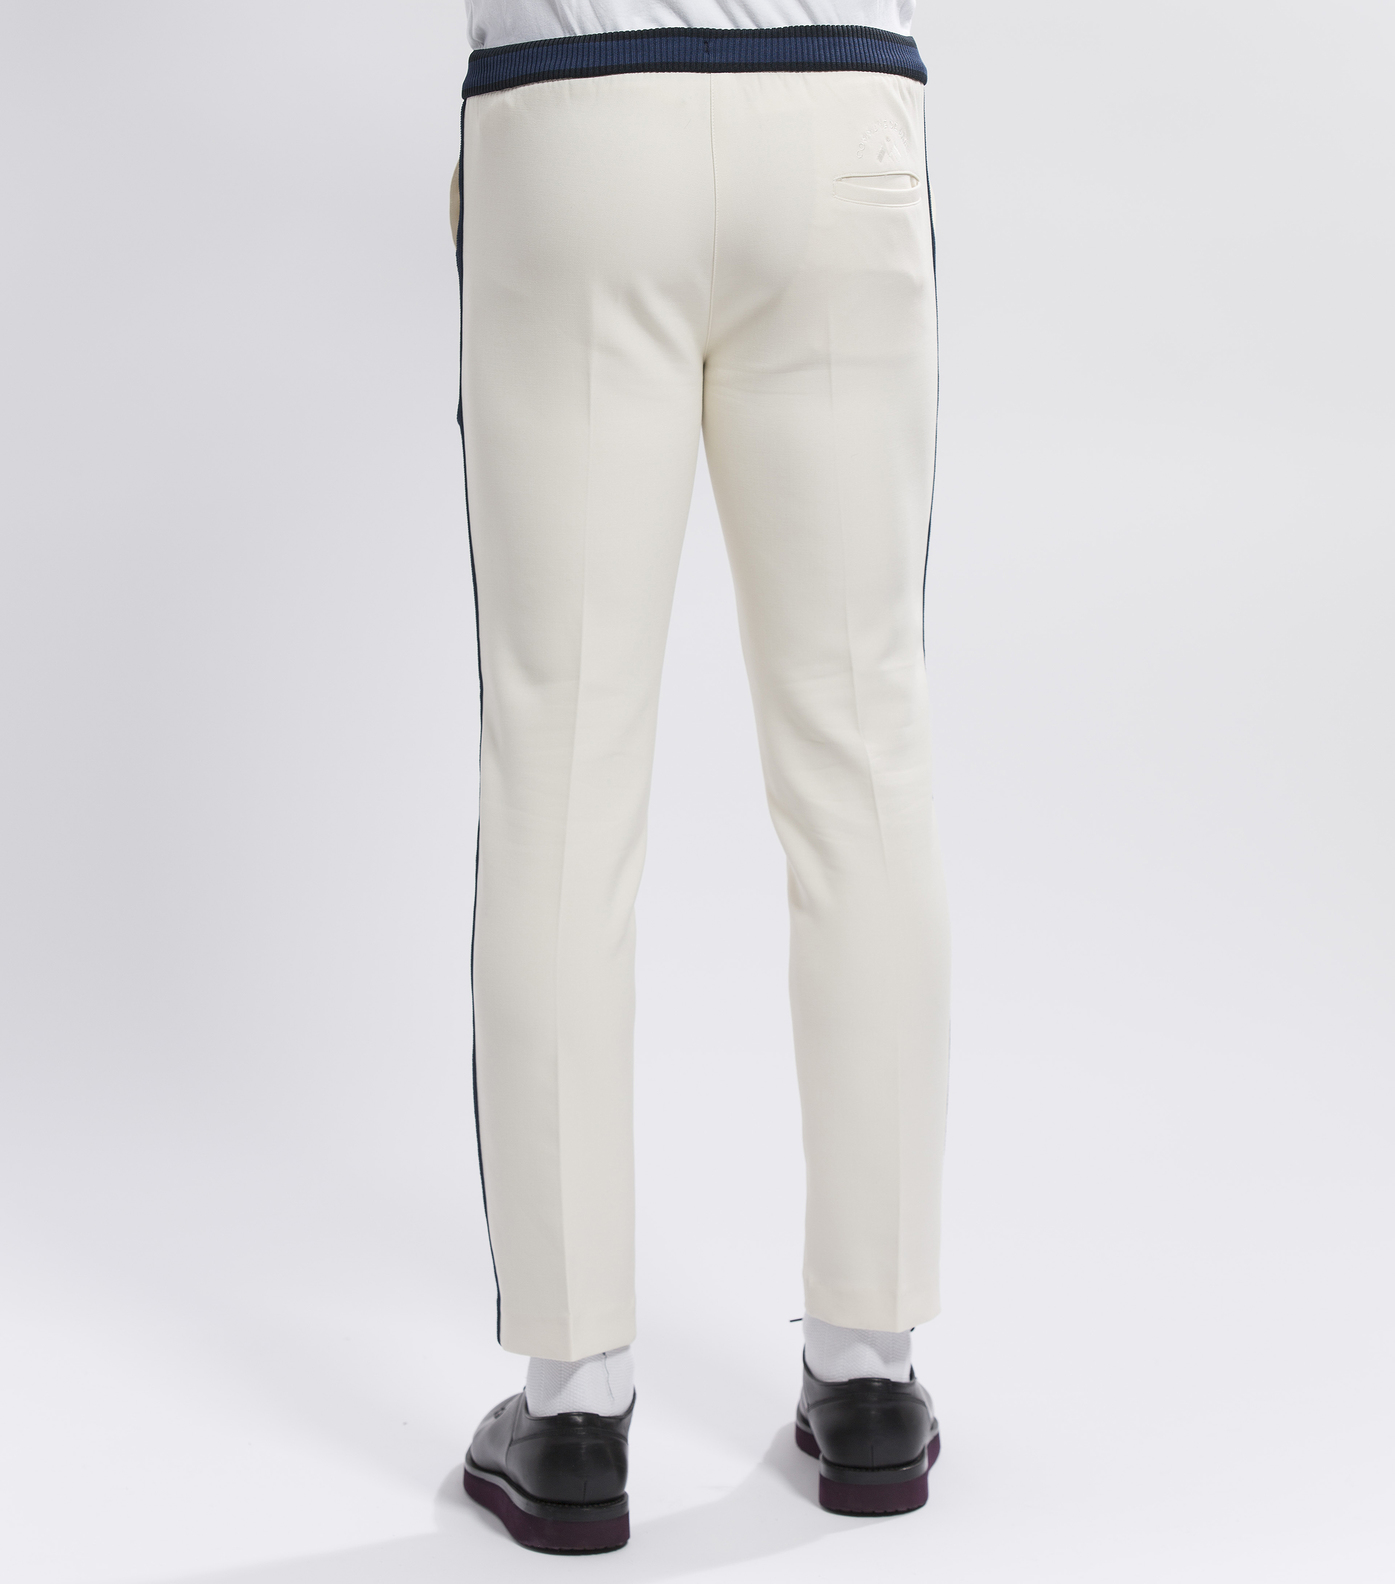 PANTS GNSTARTER - Off white